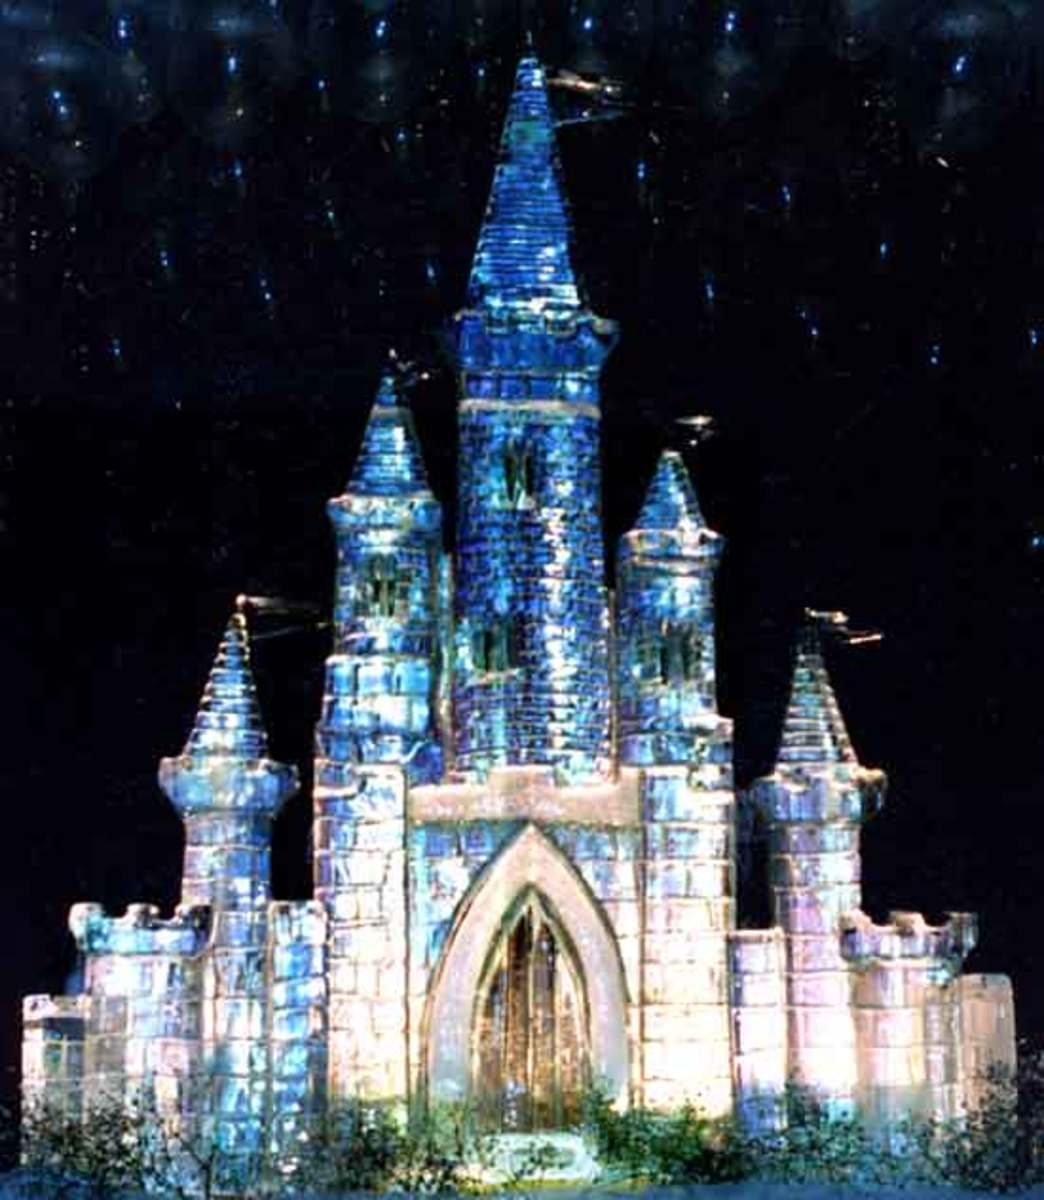 Fairytale Ice Castle